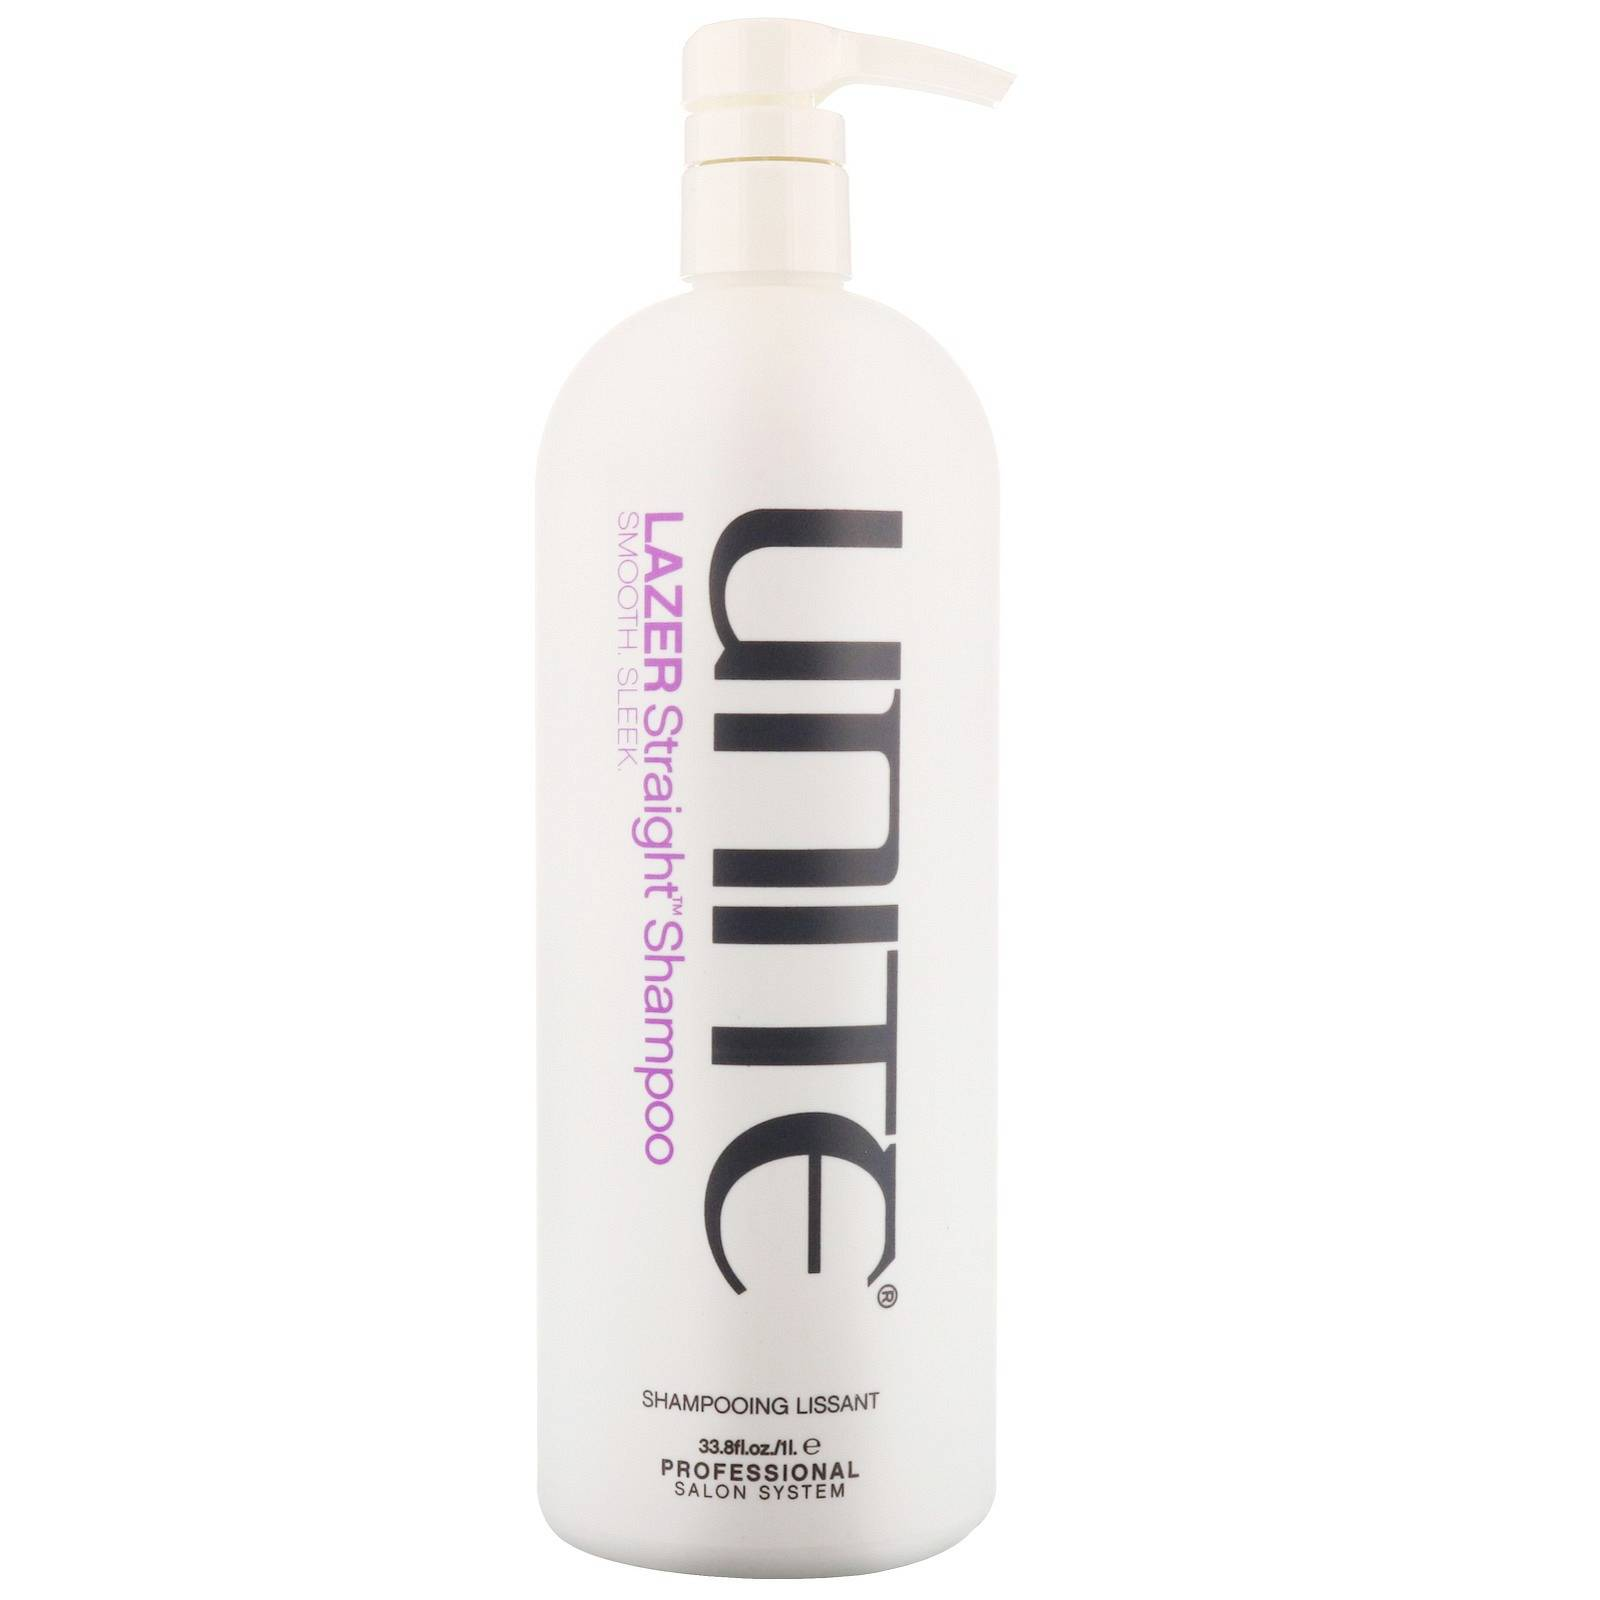 Unite Cleanse & Condition Lazer dritto shampoo 1000ml/33,8 FL. oz.